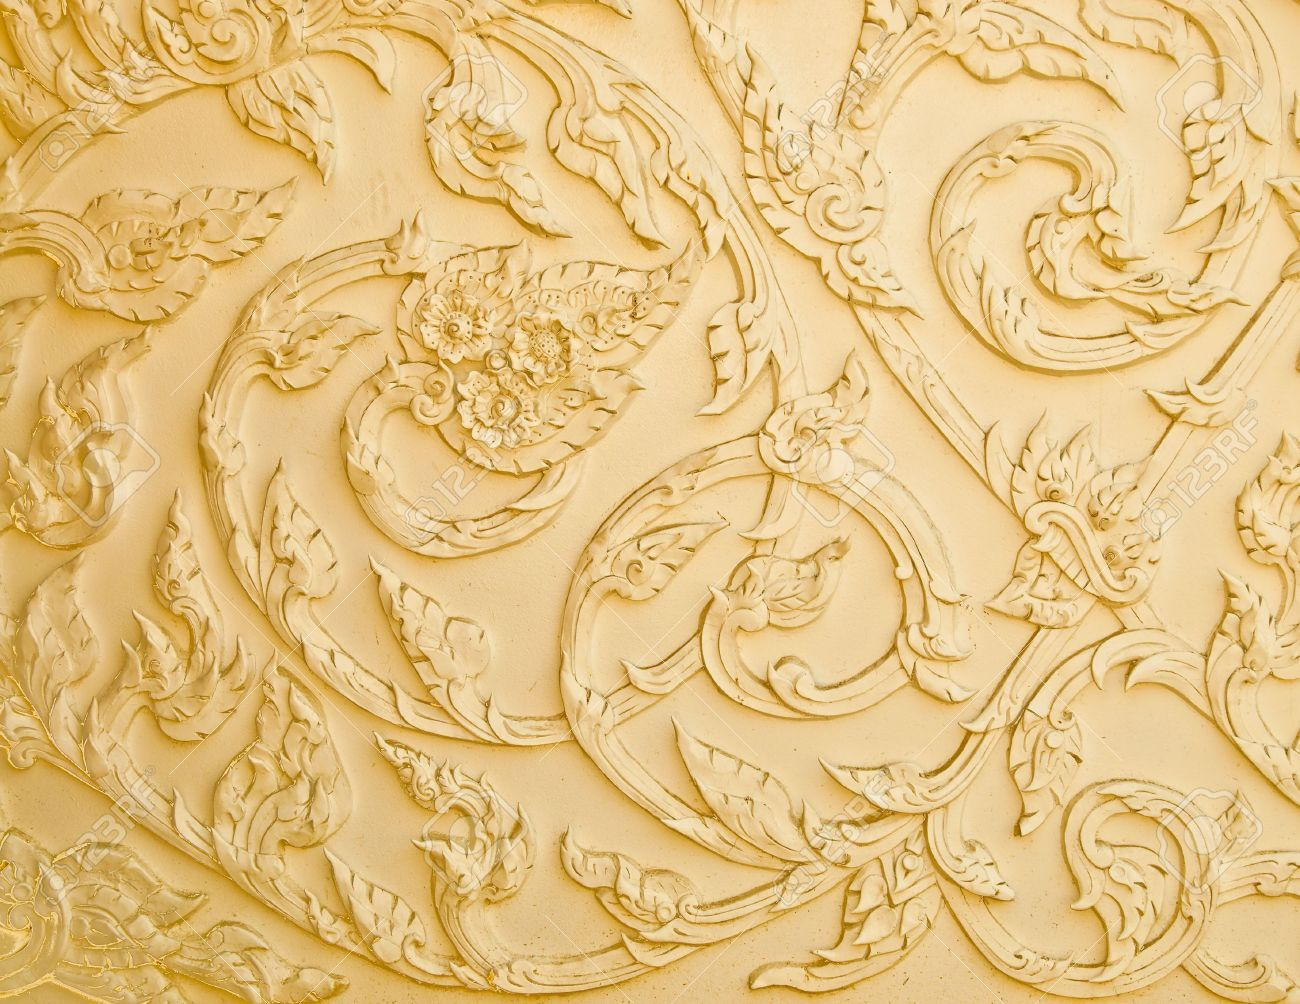 plaster artistic wall - Google Search | plaster (project 1) | Pinterest